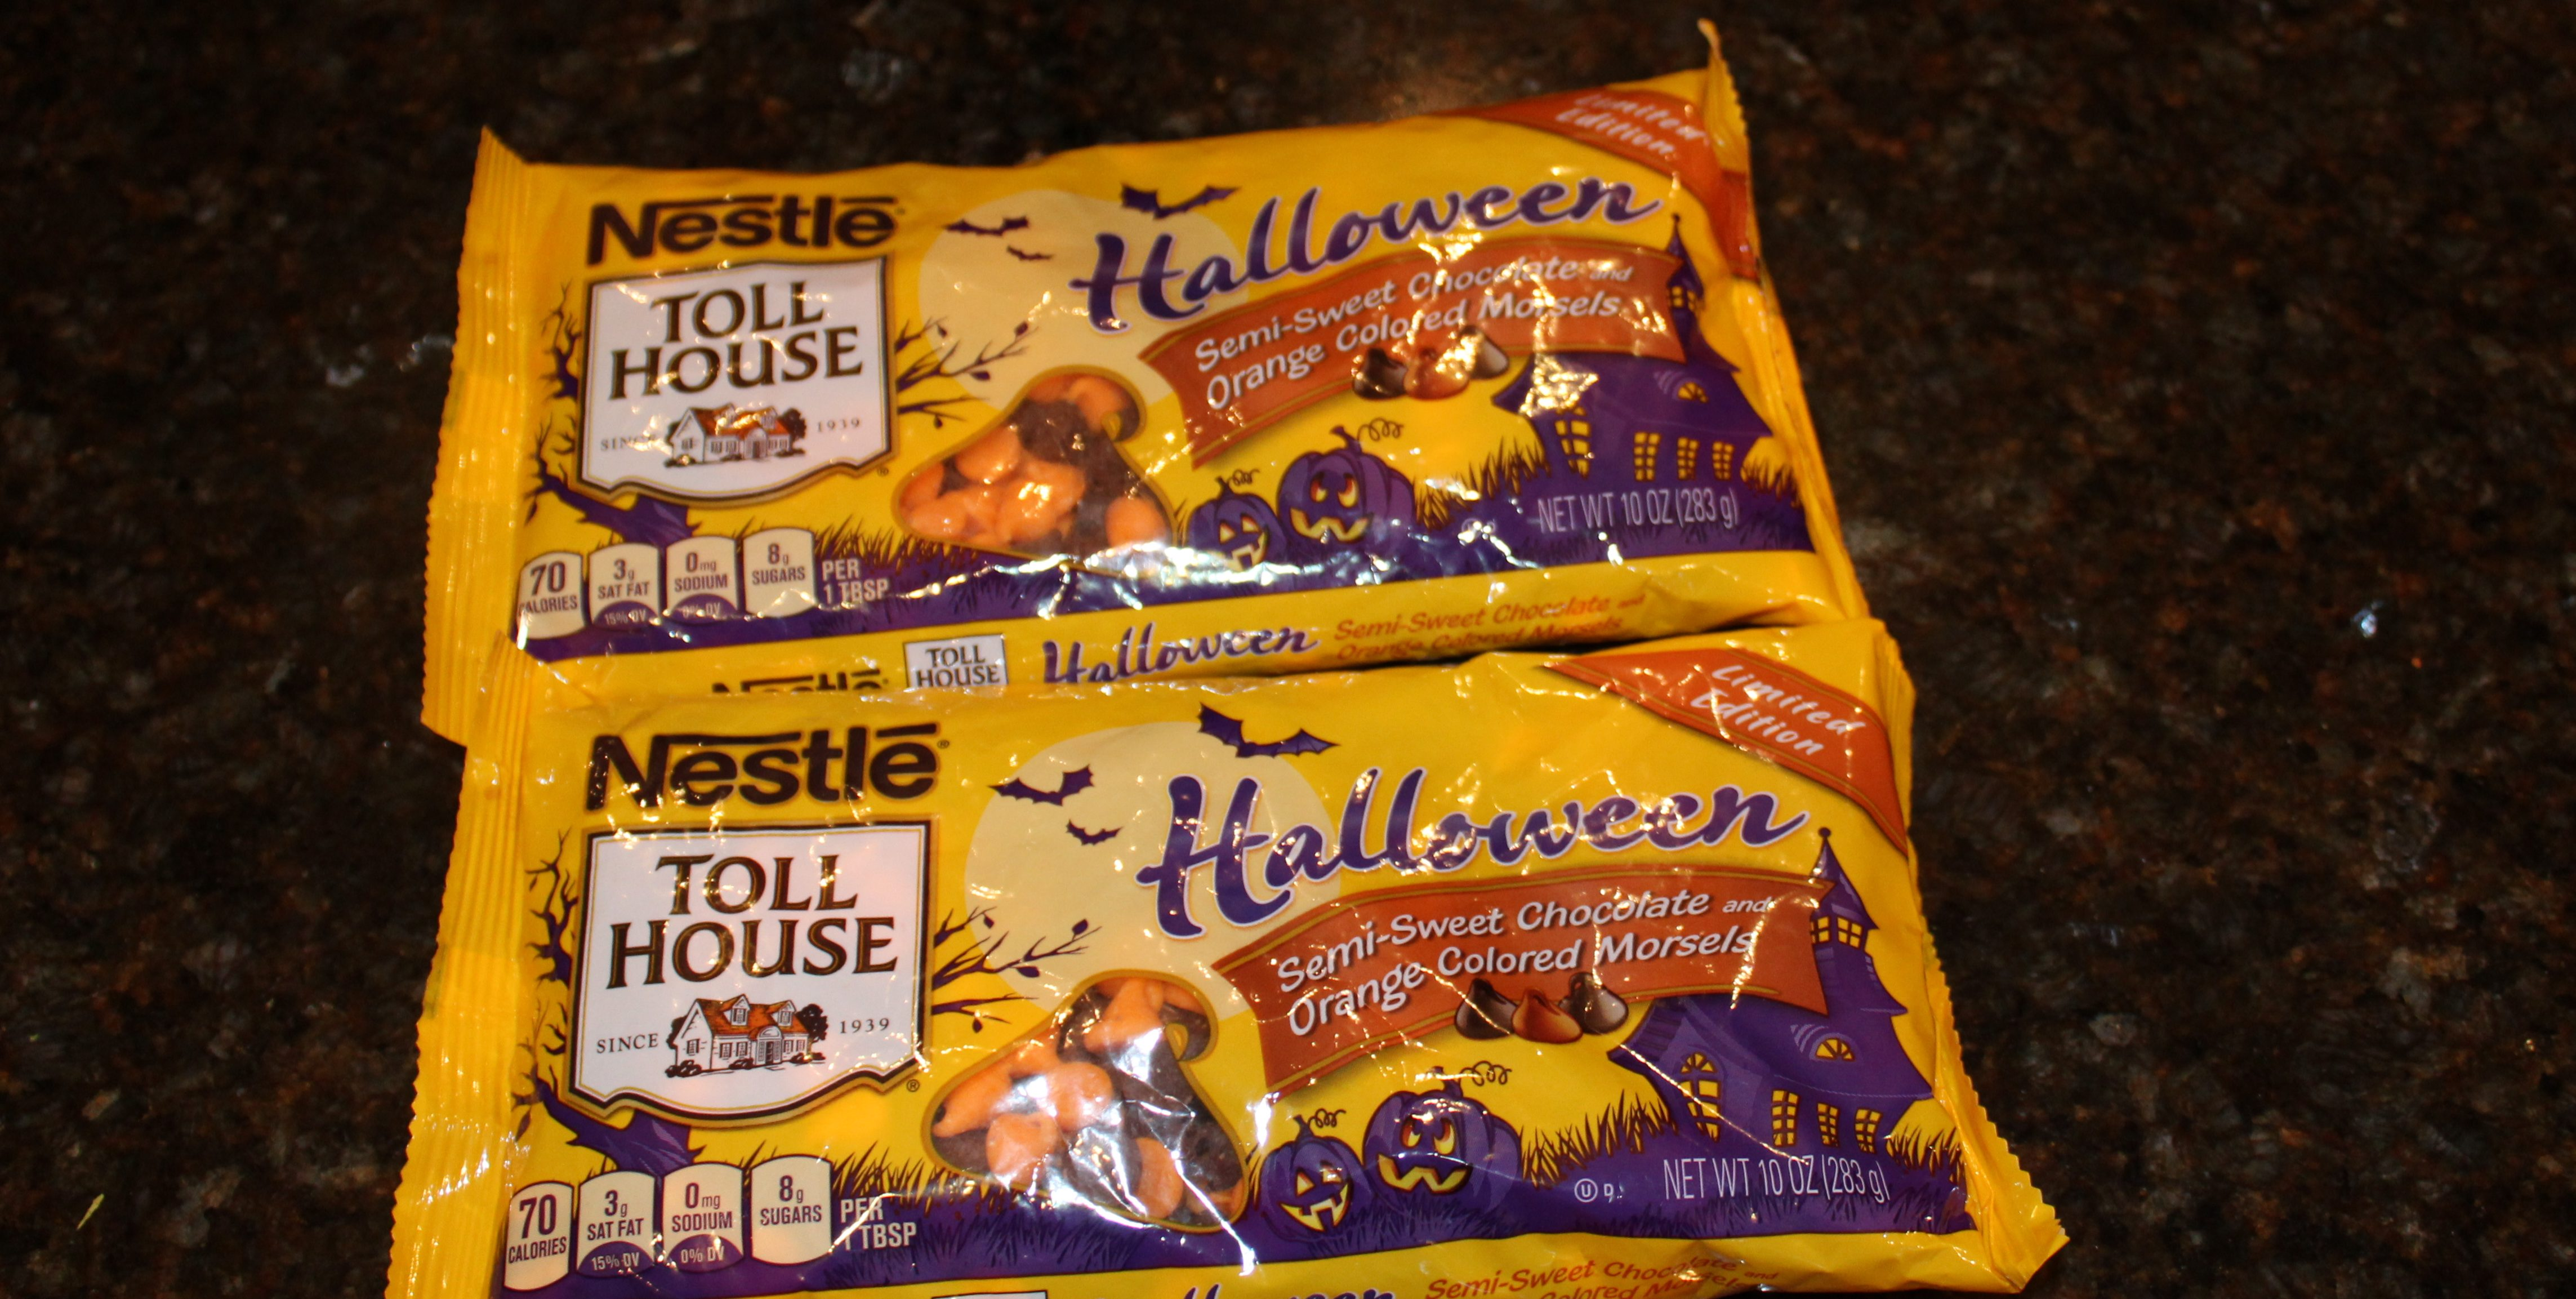 Nestle S Toll House Oatmeal Chocolate Chip Cookie Recipe Dells Daily Dish